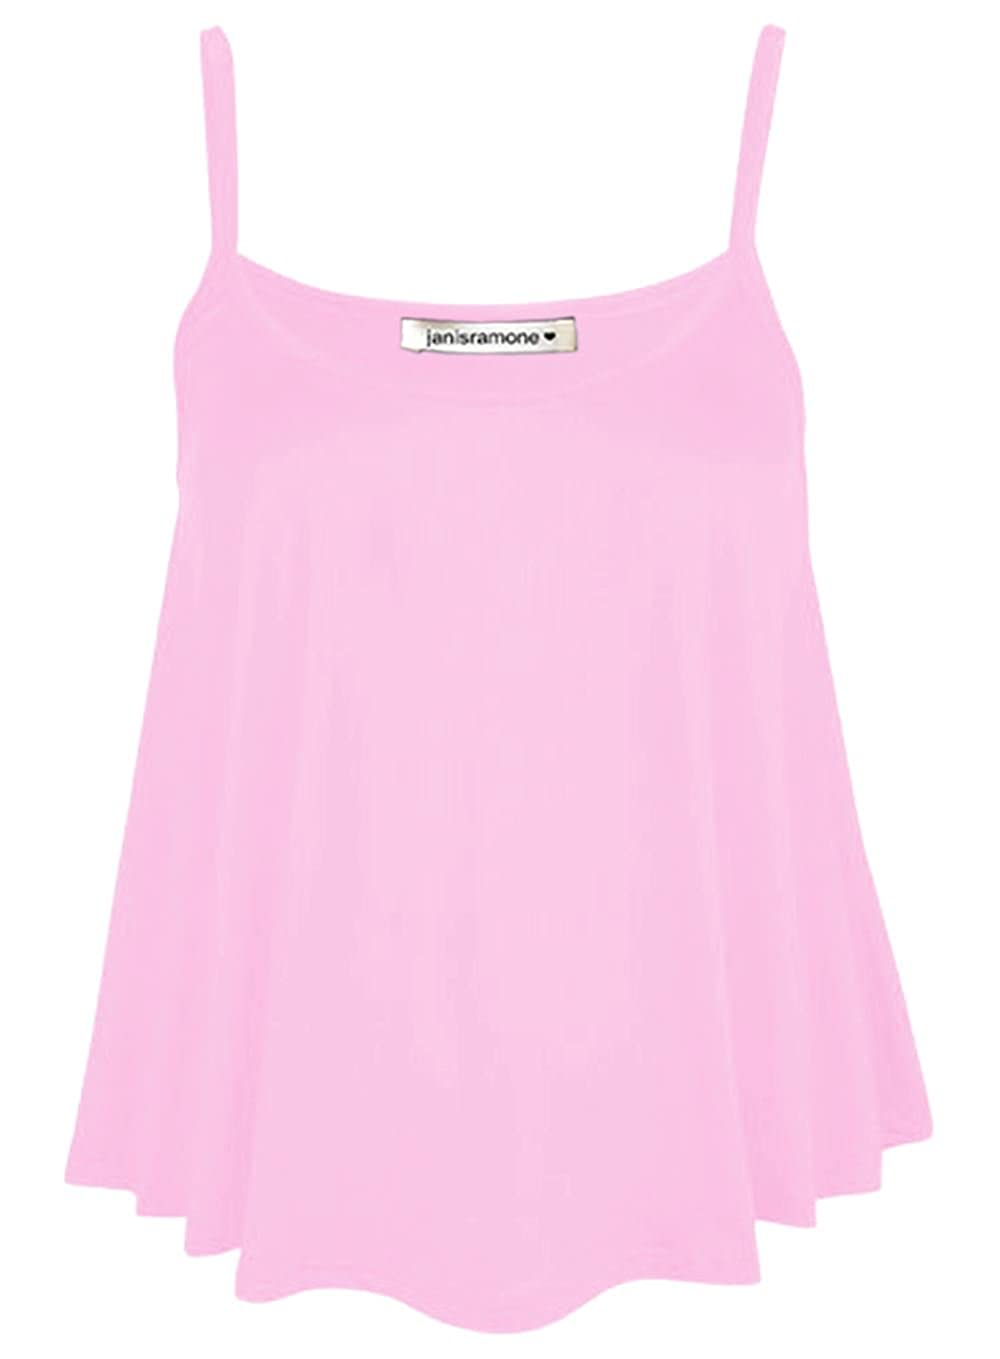 Women/'s Plain Swing Sleeveless Top Strappy Cami Vest Ladies Plus SizeS Flared